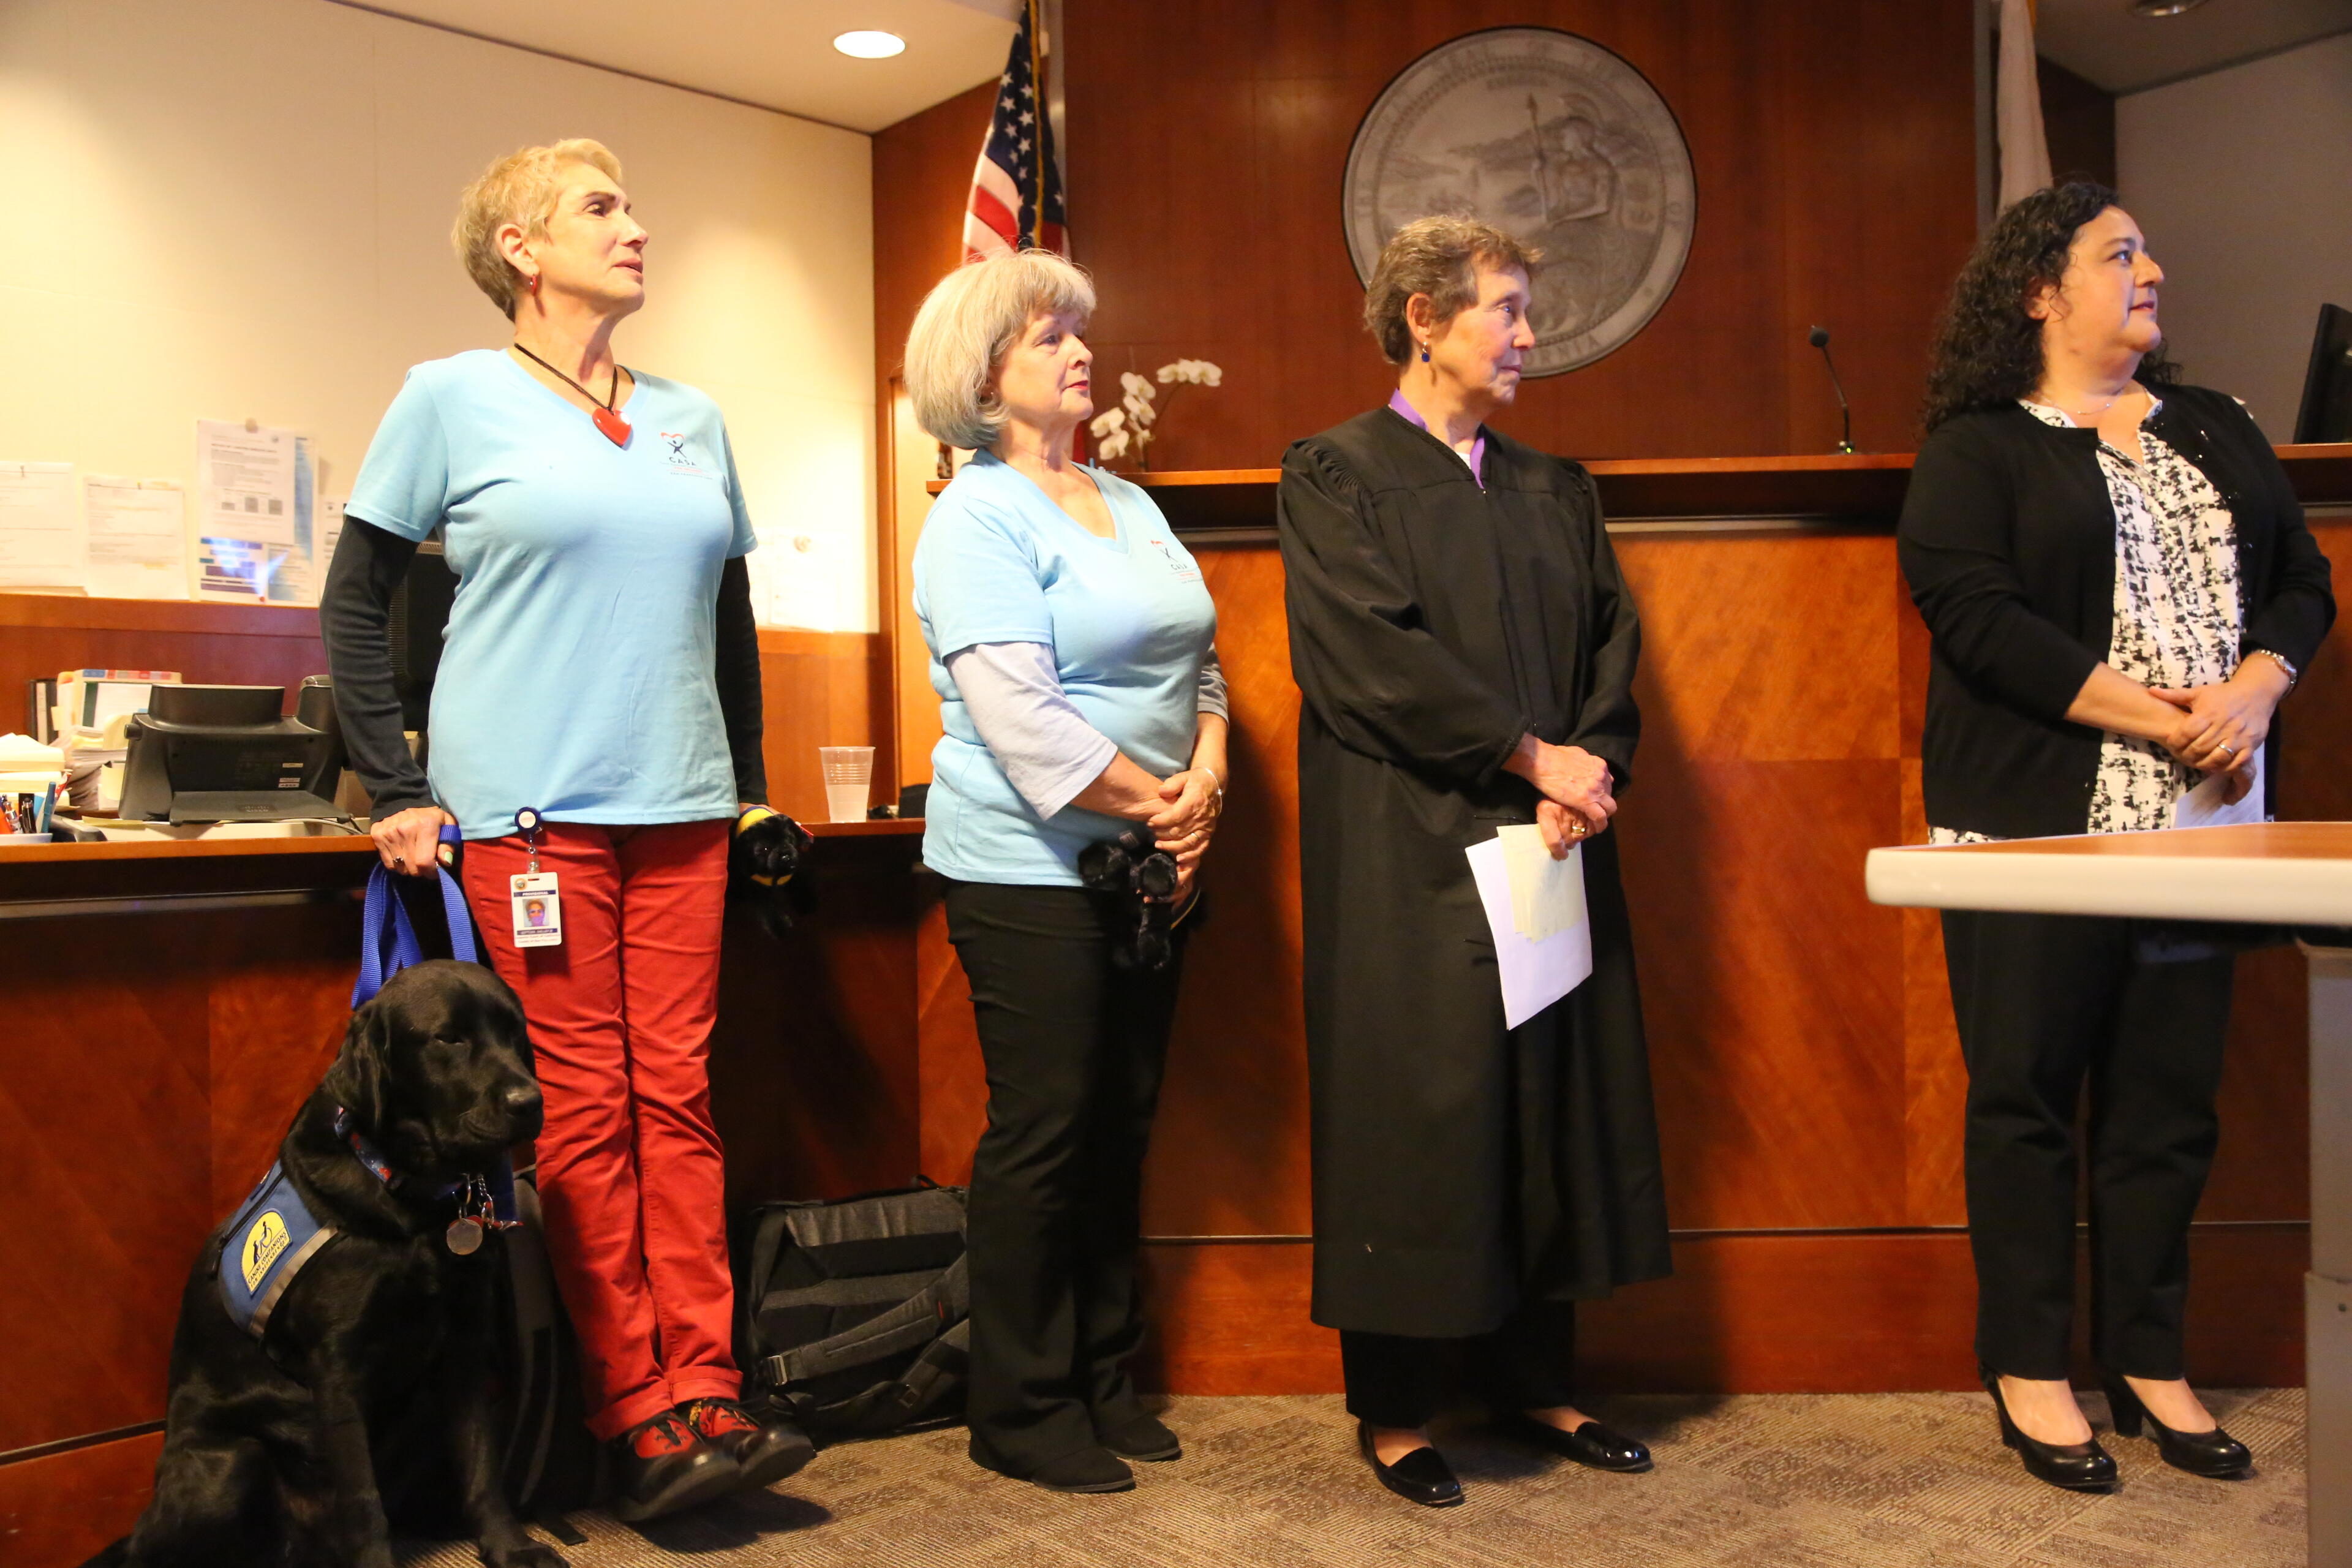 On August 25, Nemo, the young black Labrador Retriever, was sworn in as a courthouse dog. He is pictued with his two CASA handlers, Judge Nancy Davis and SFCASA Executive Director, Renee Espinoza.